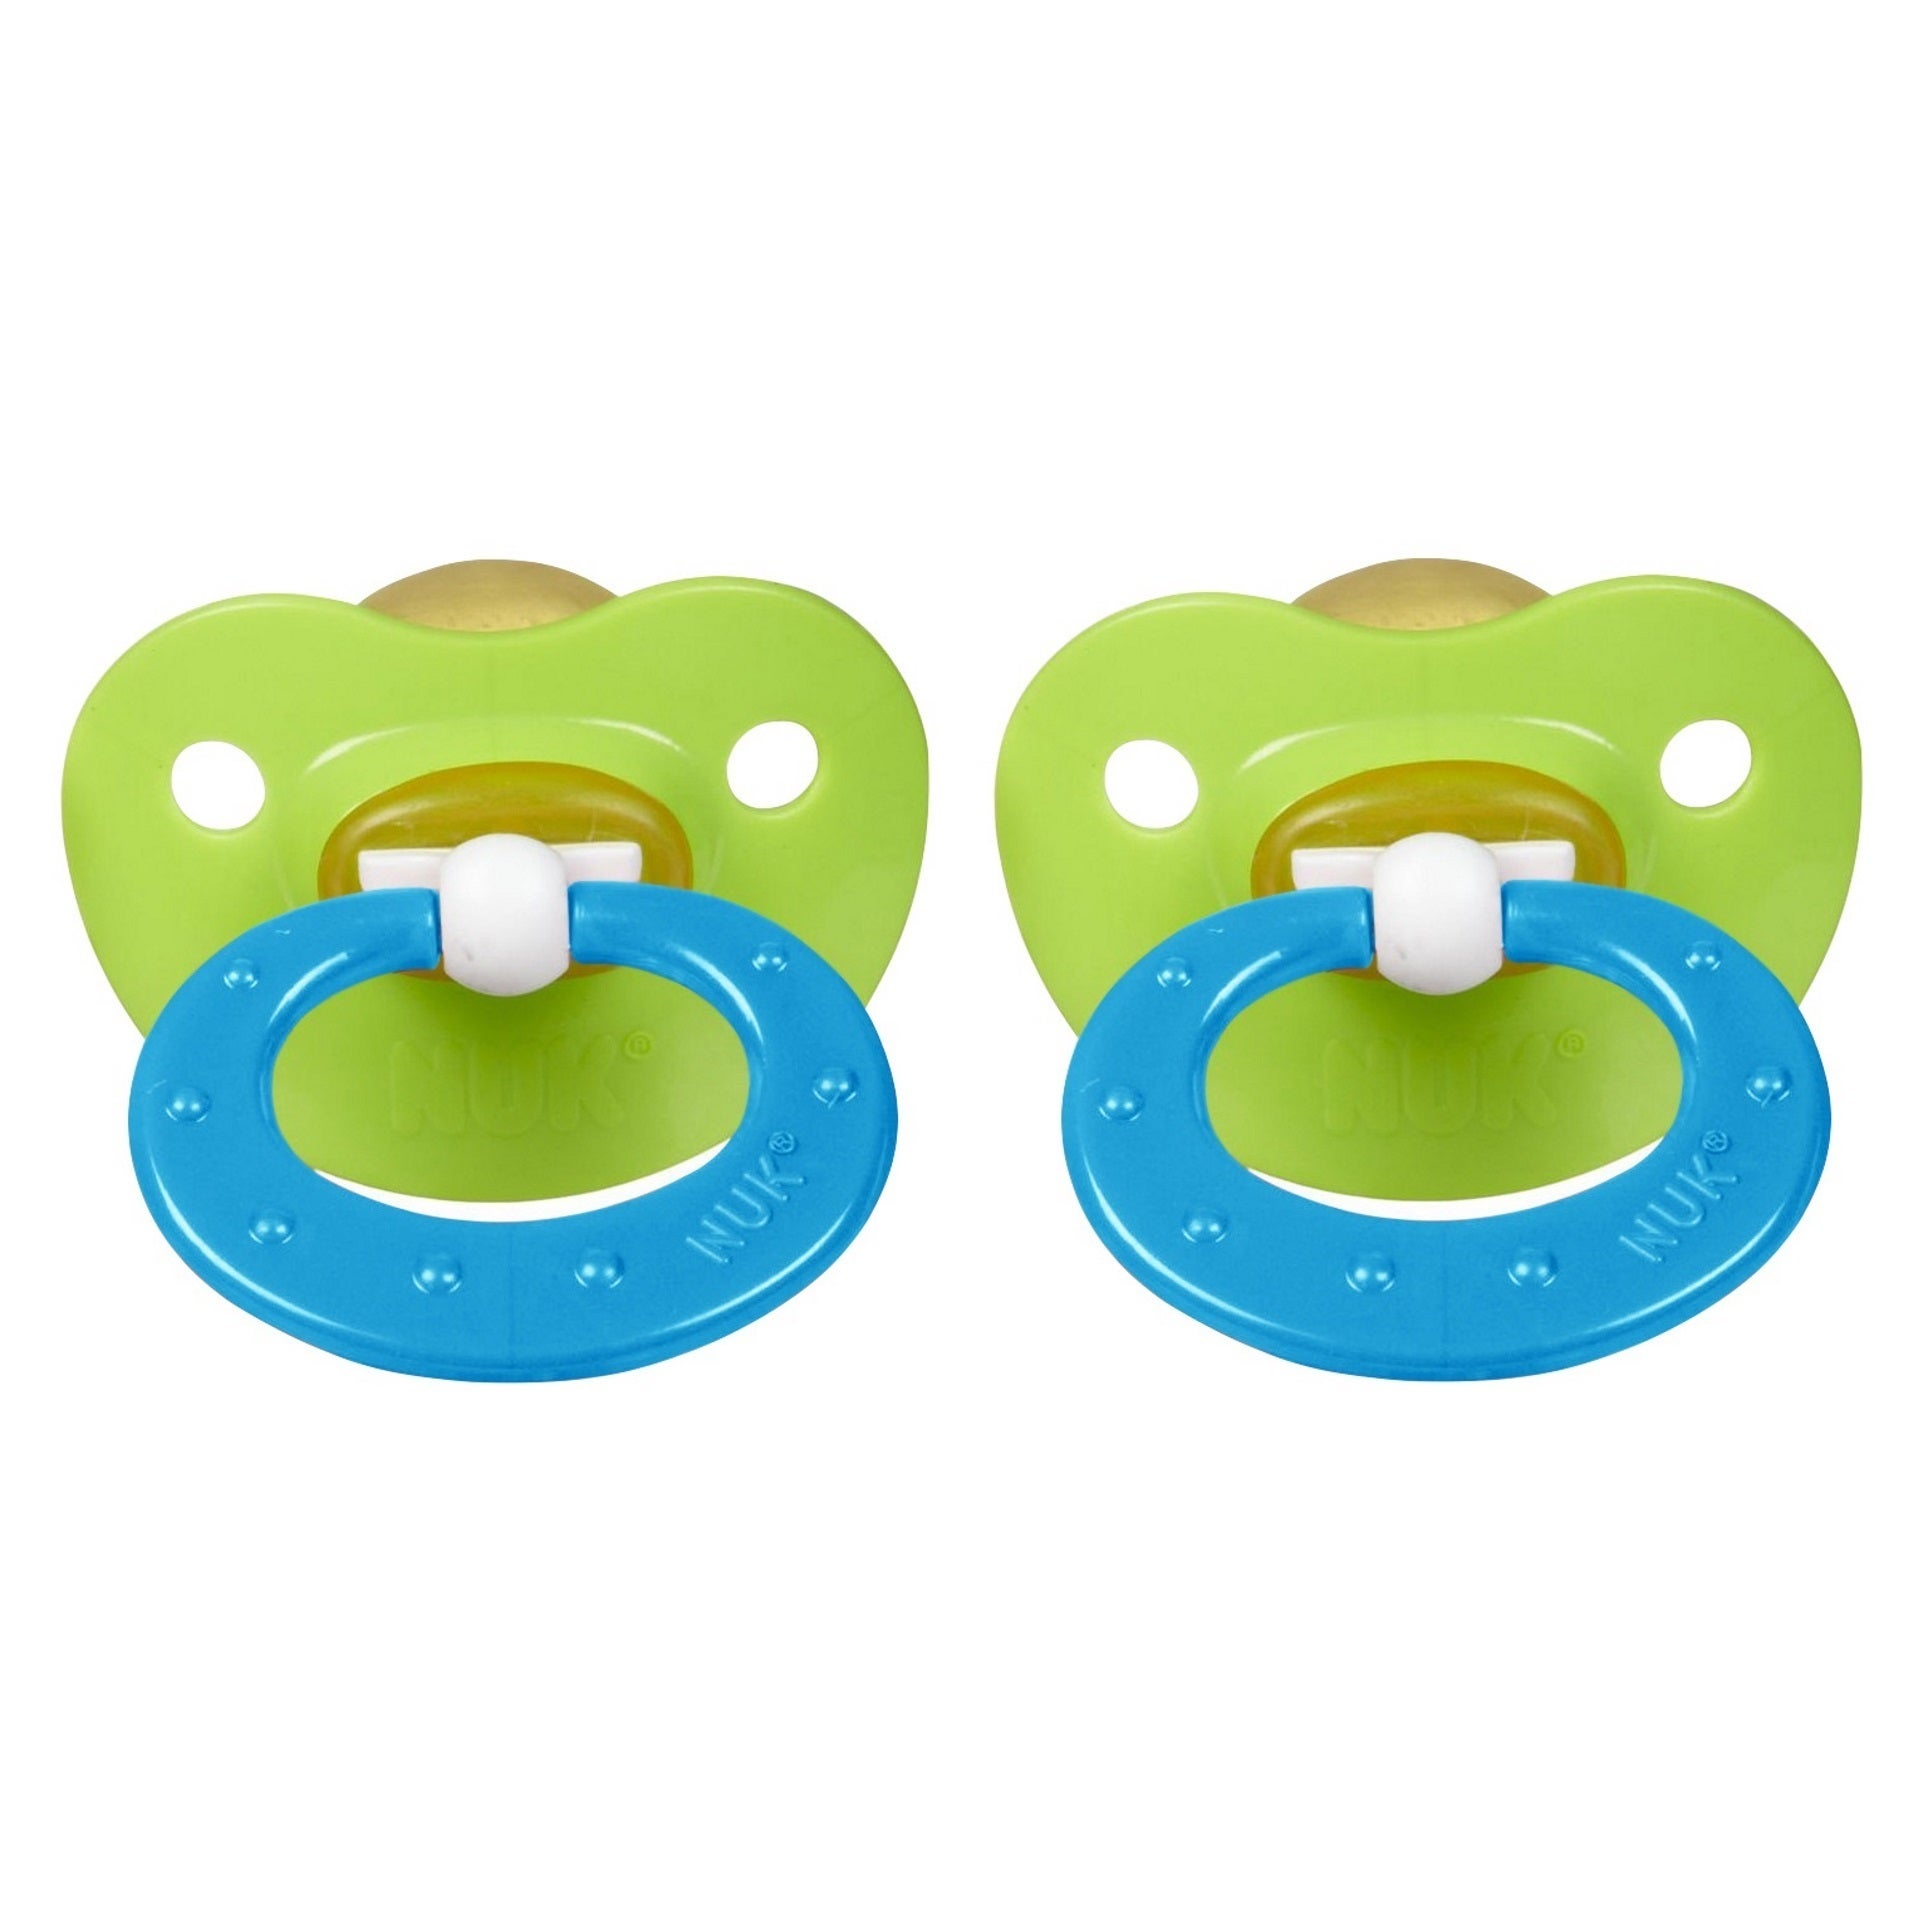 Orthodontic Size 3 Latex NUK Soother // Dummy 18-36 months